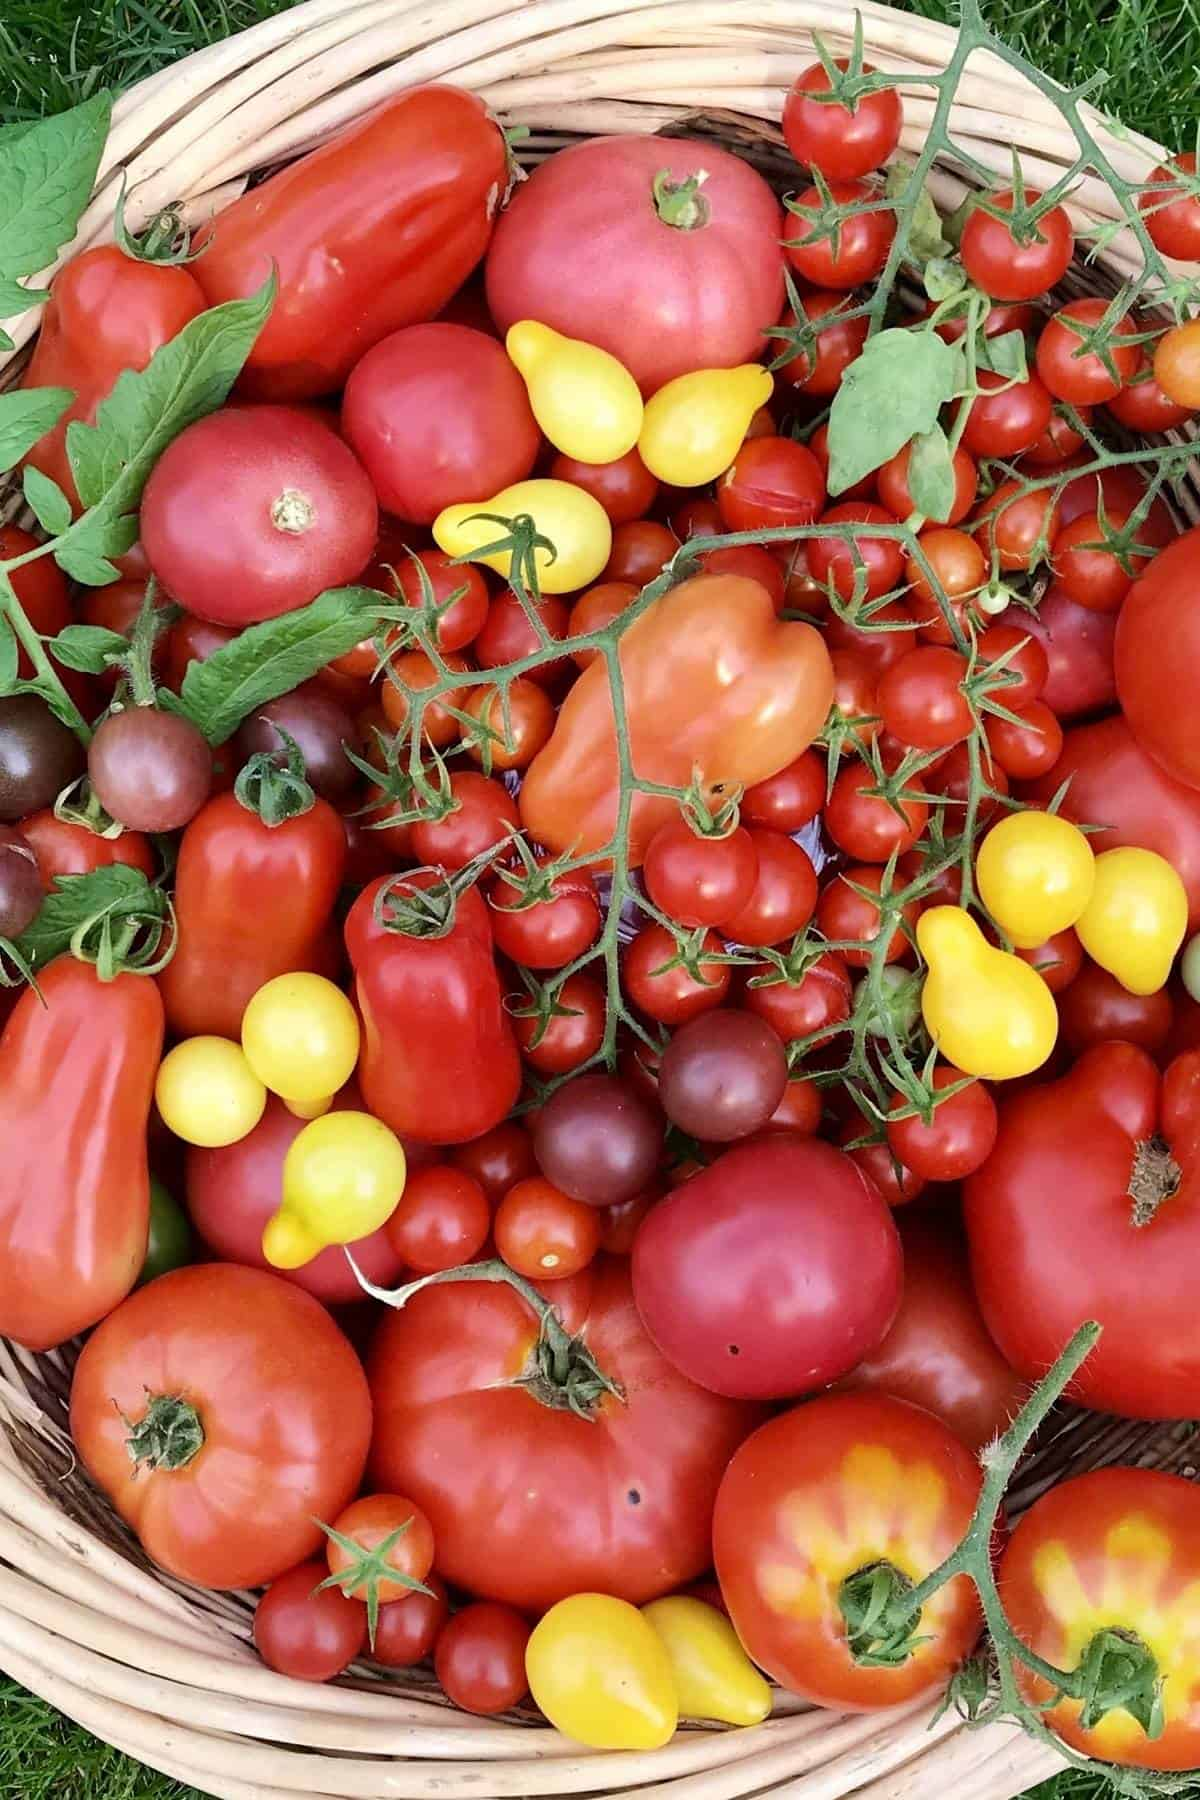 A variety of garden tomatoes in a large basket.